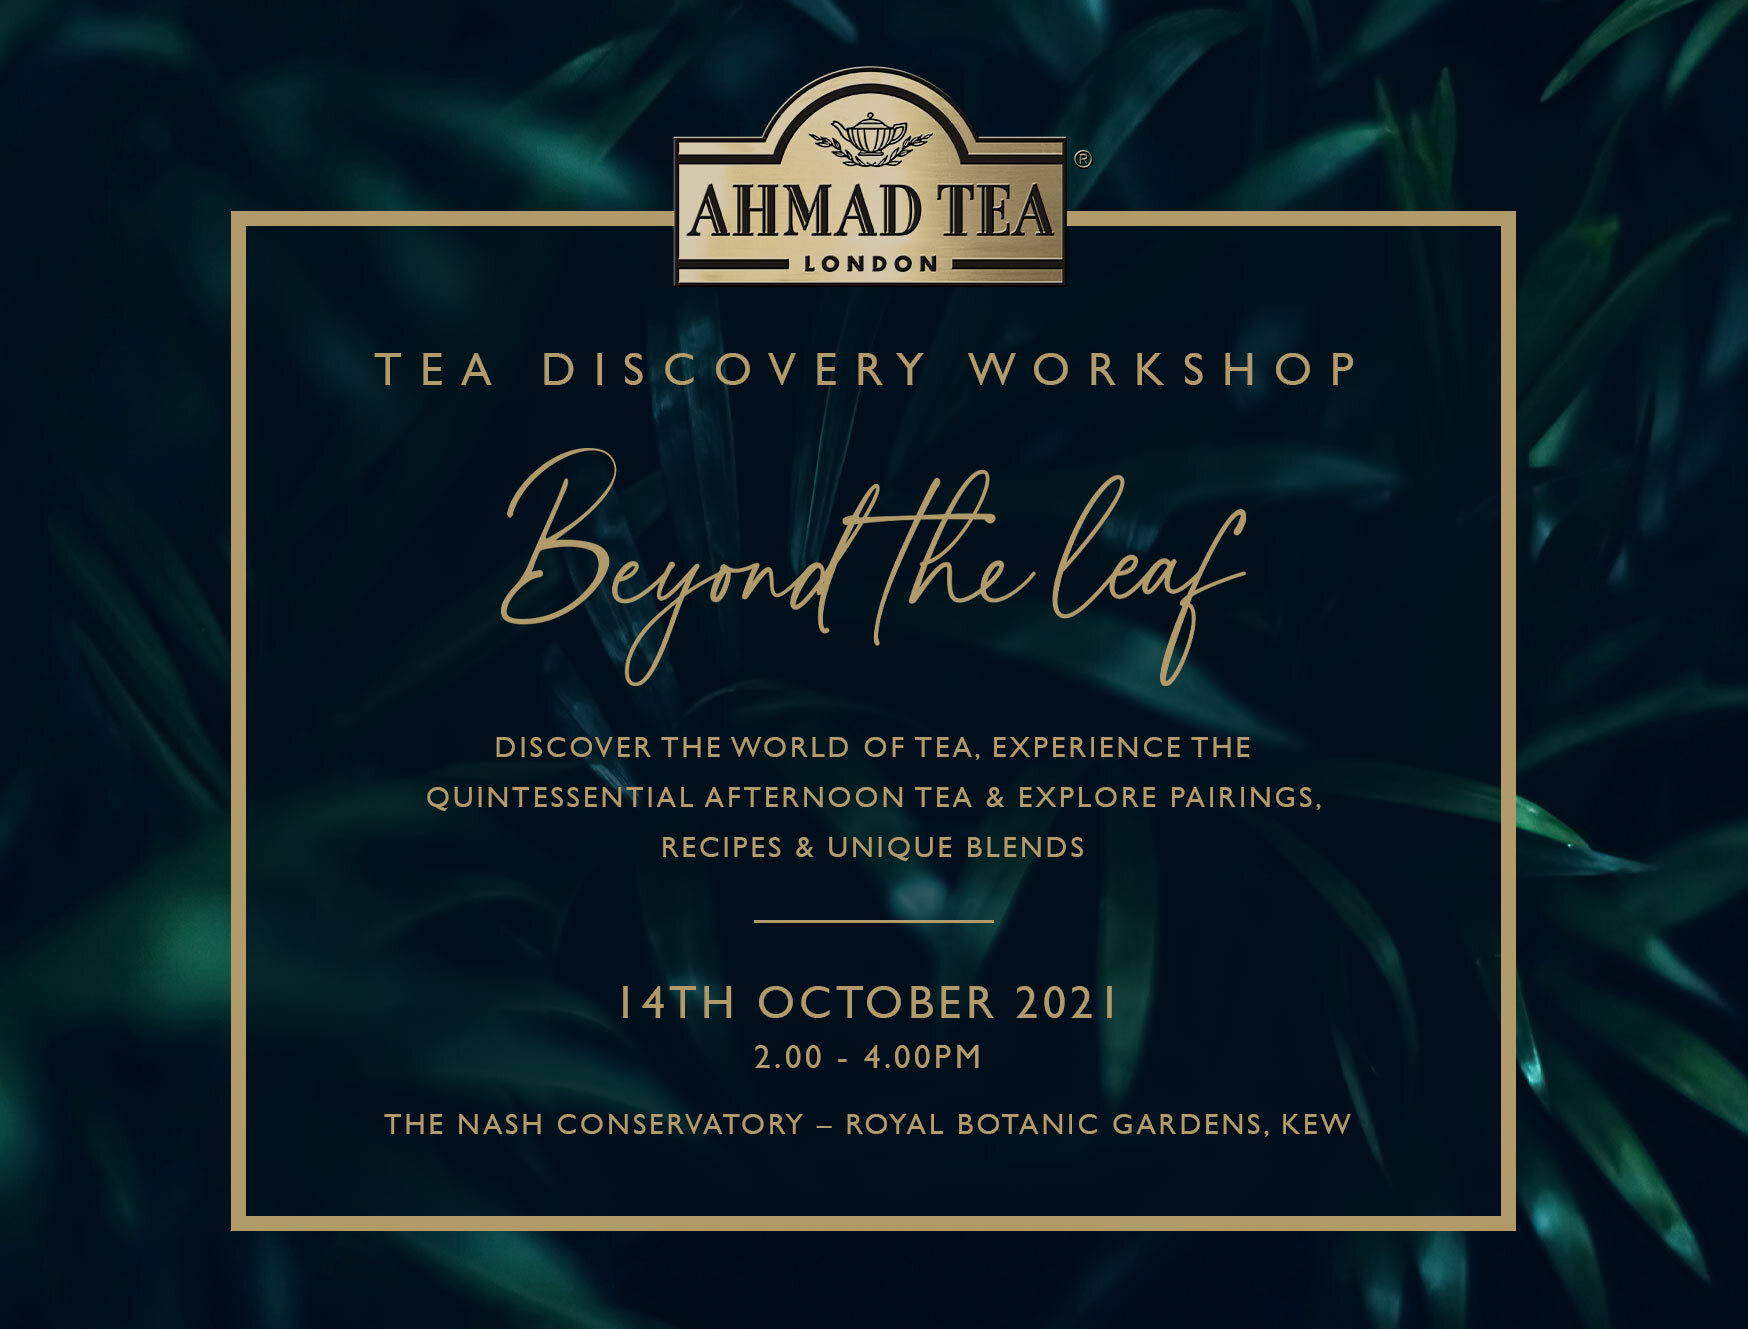 Discover the world of tea,experience the quintessential afternoon tea & explore pairings.